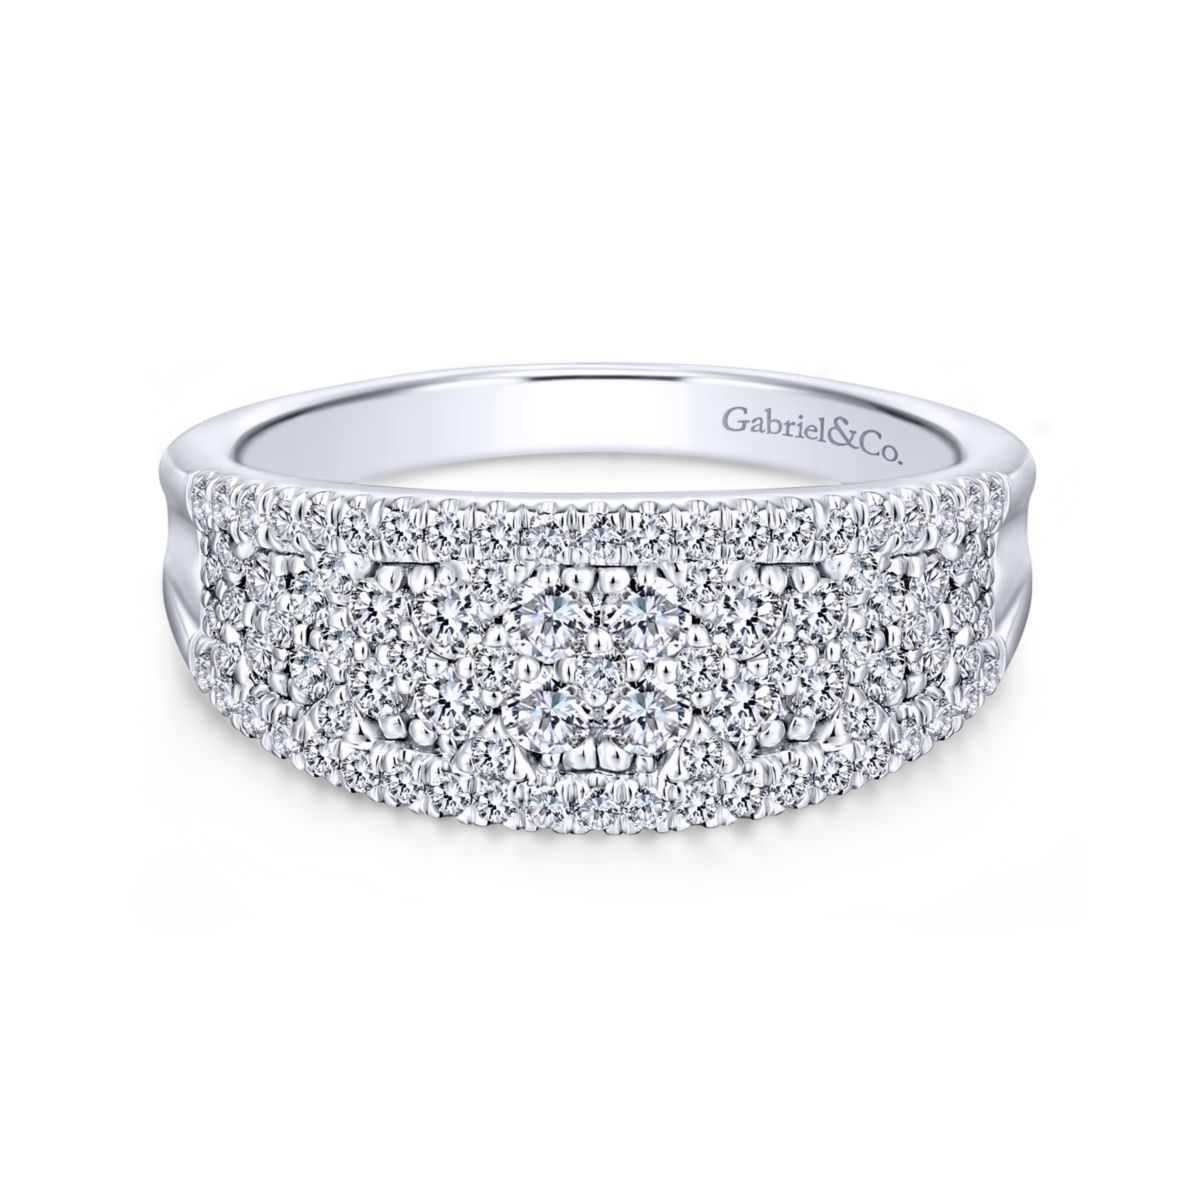 Curved Pave Mixed Diamonds Ring in 14k White Gold-Gabriel-LR51342W45JJ-1